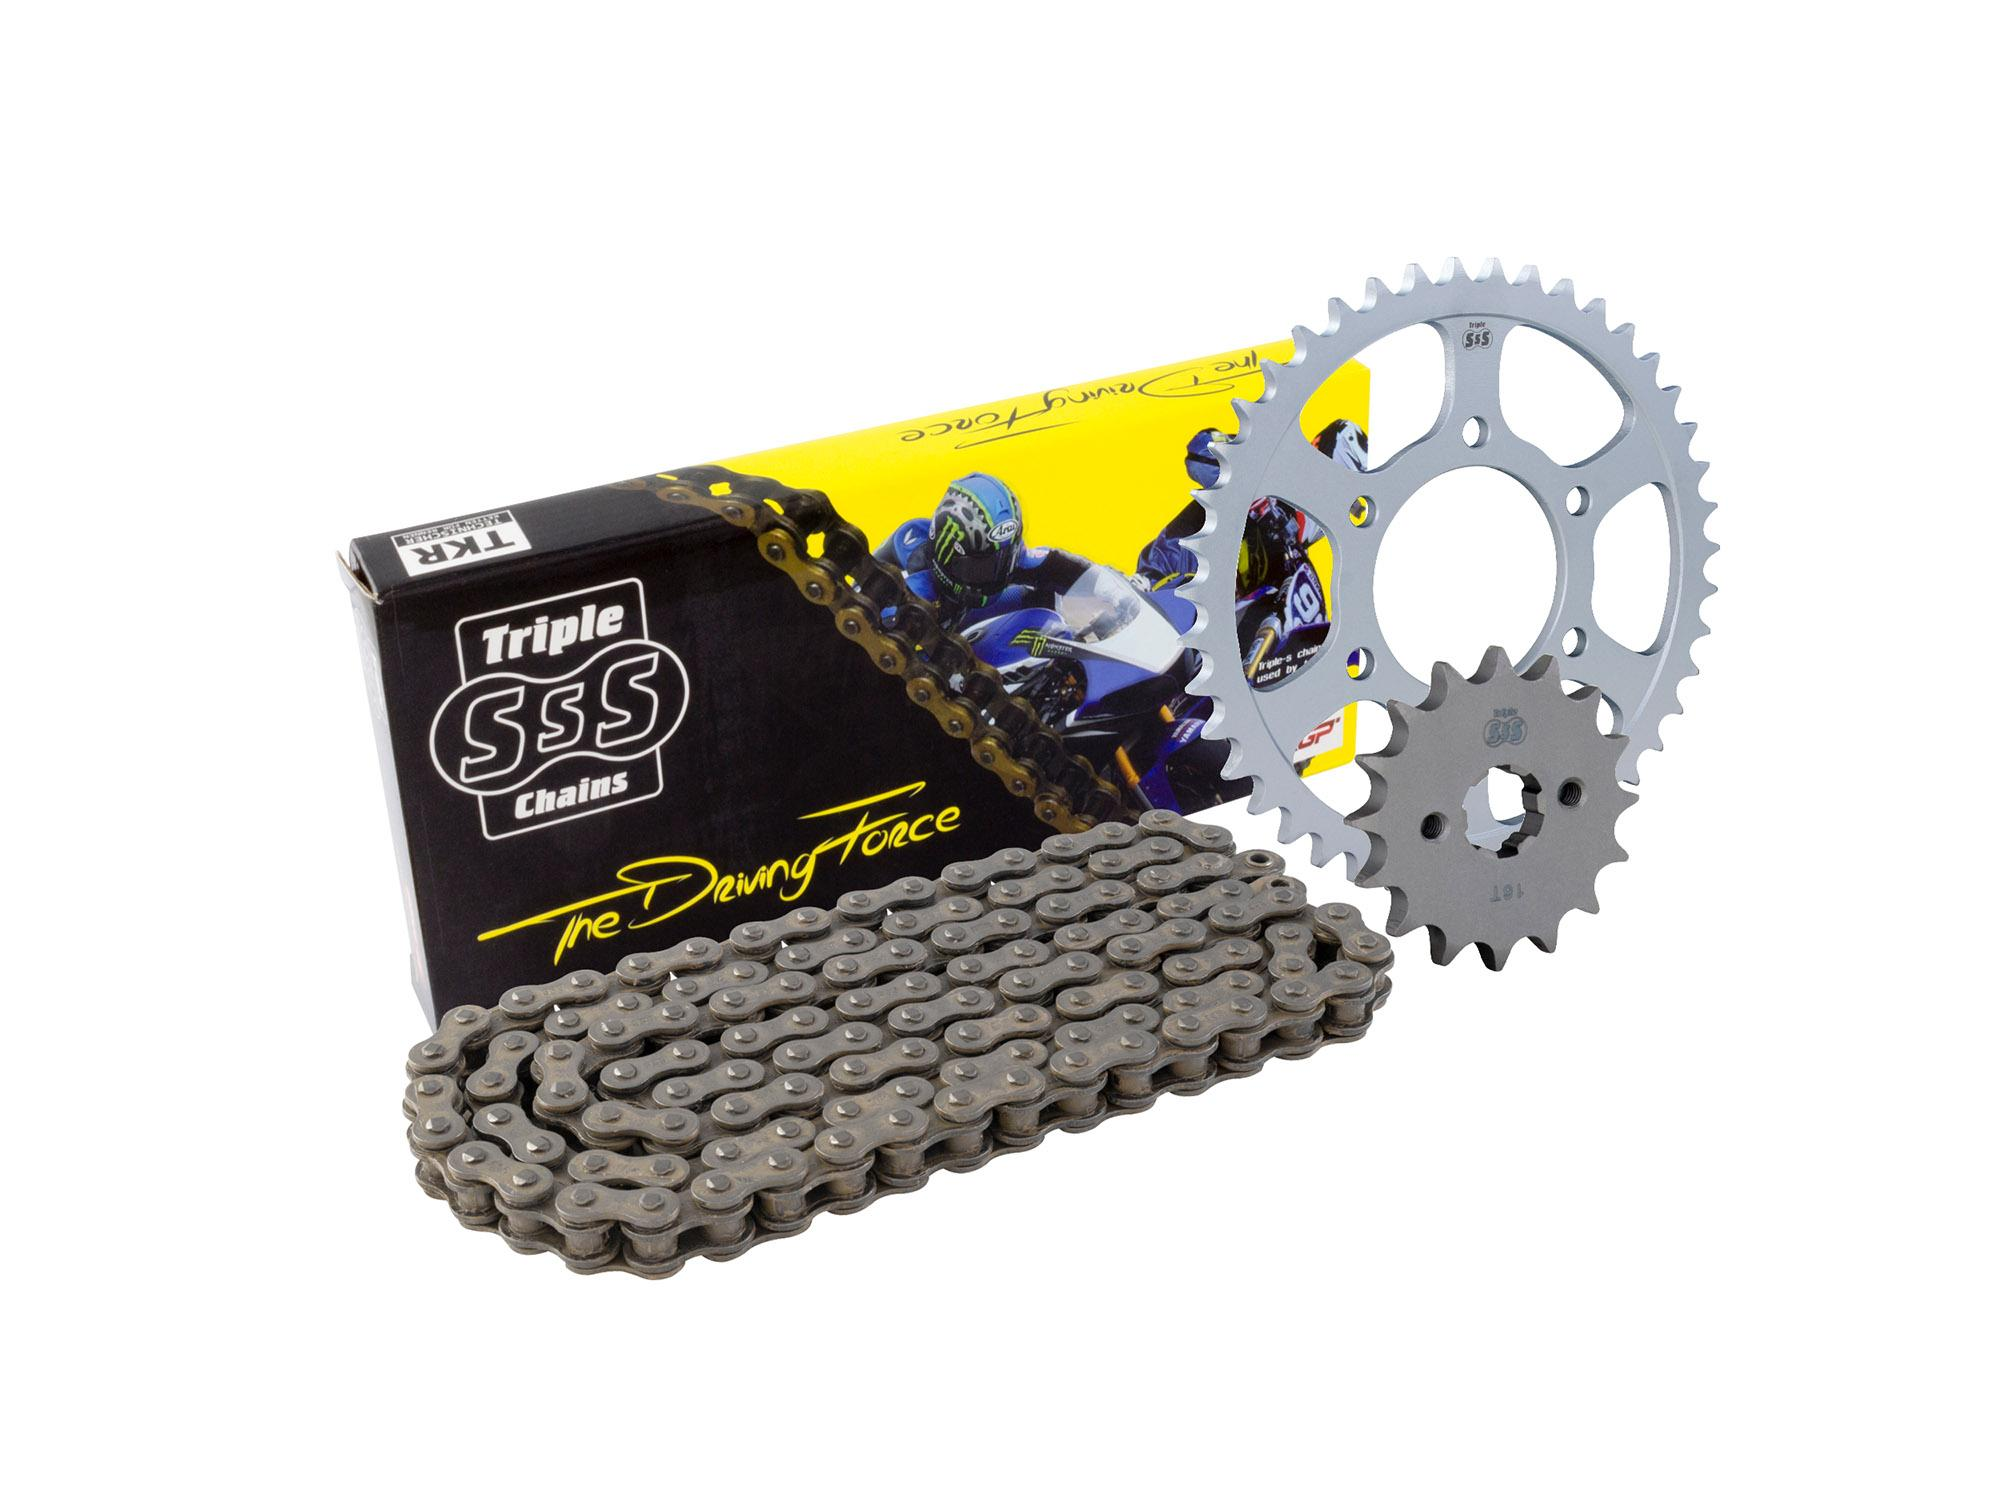 Honda FMX650 05-08 Chain & Sprocket Kit: 14T Front, 42T Rear, HD O-Ring Black Chain 520H 110Link